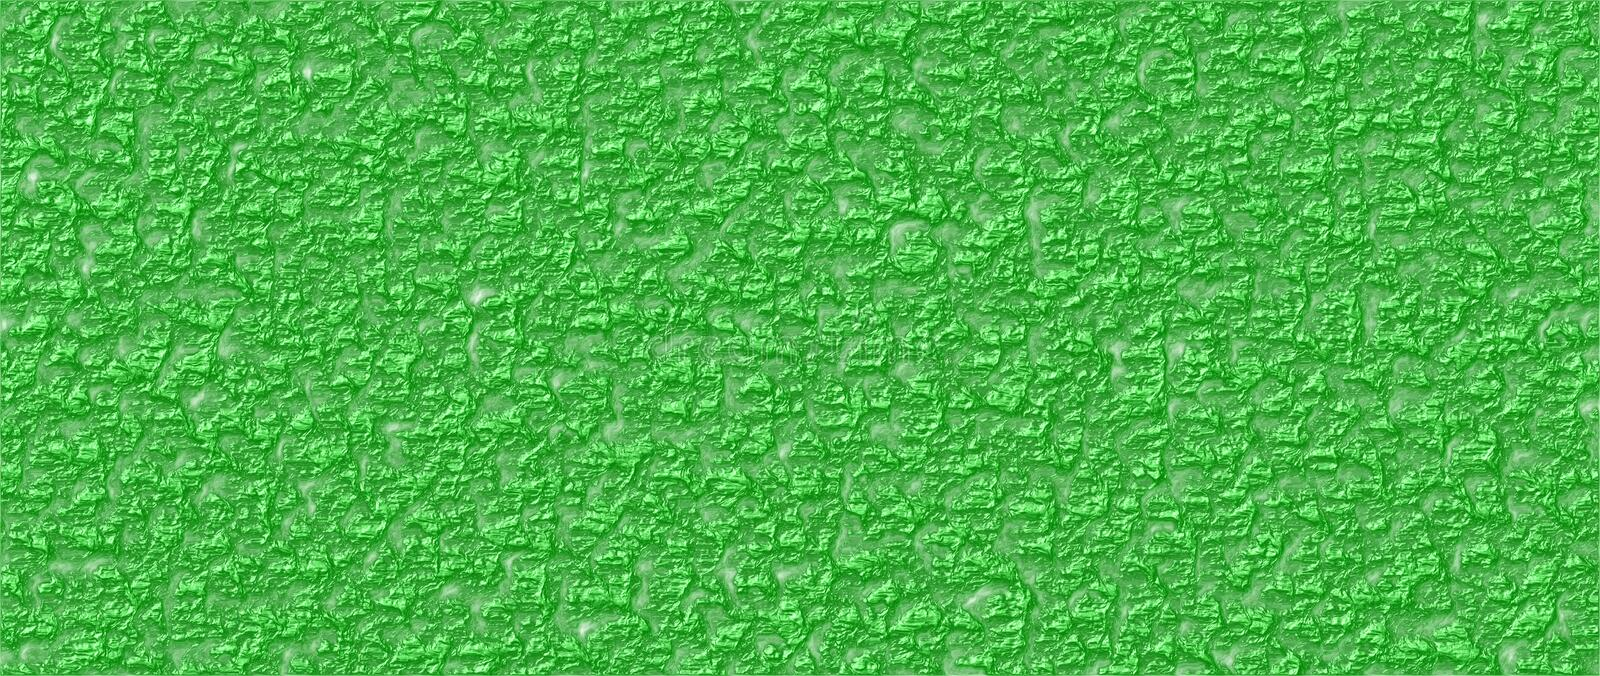 Rough background in wrinkled varnish style, green color. Wrinkled varnish rough background abstract vector graphic in green color. Can be used as standalone or vector illustration